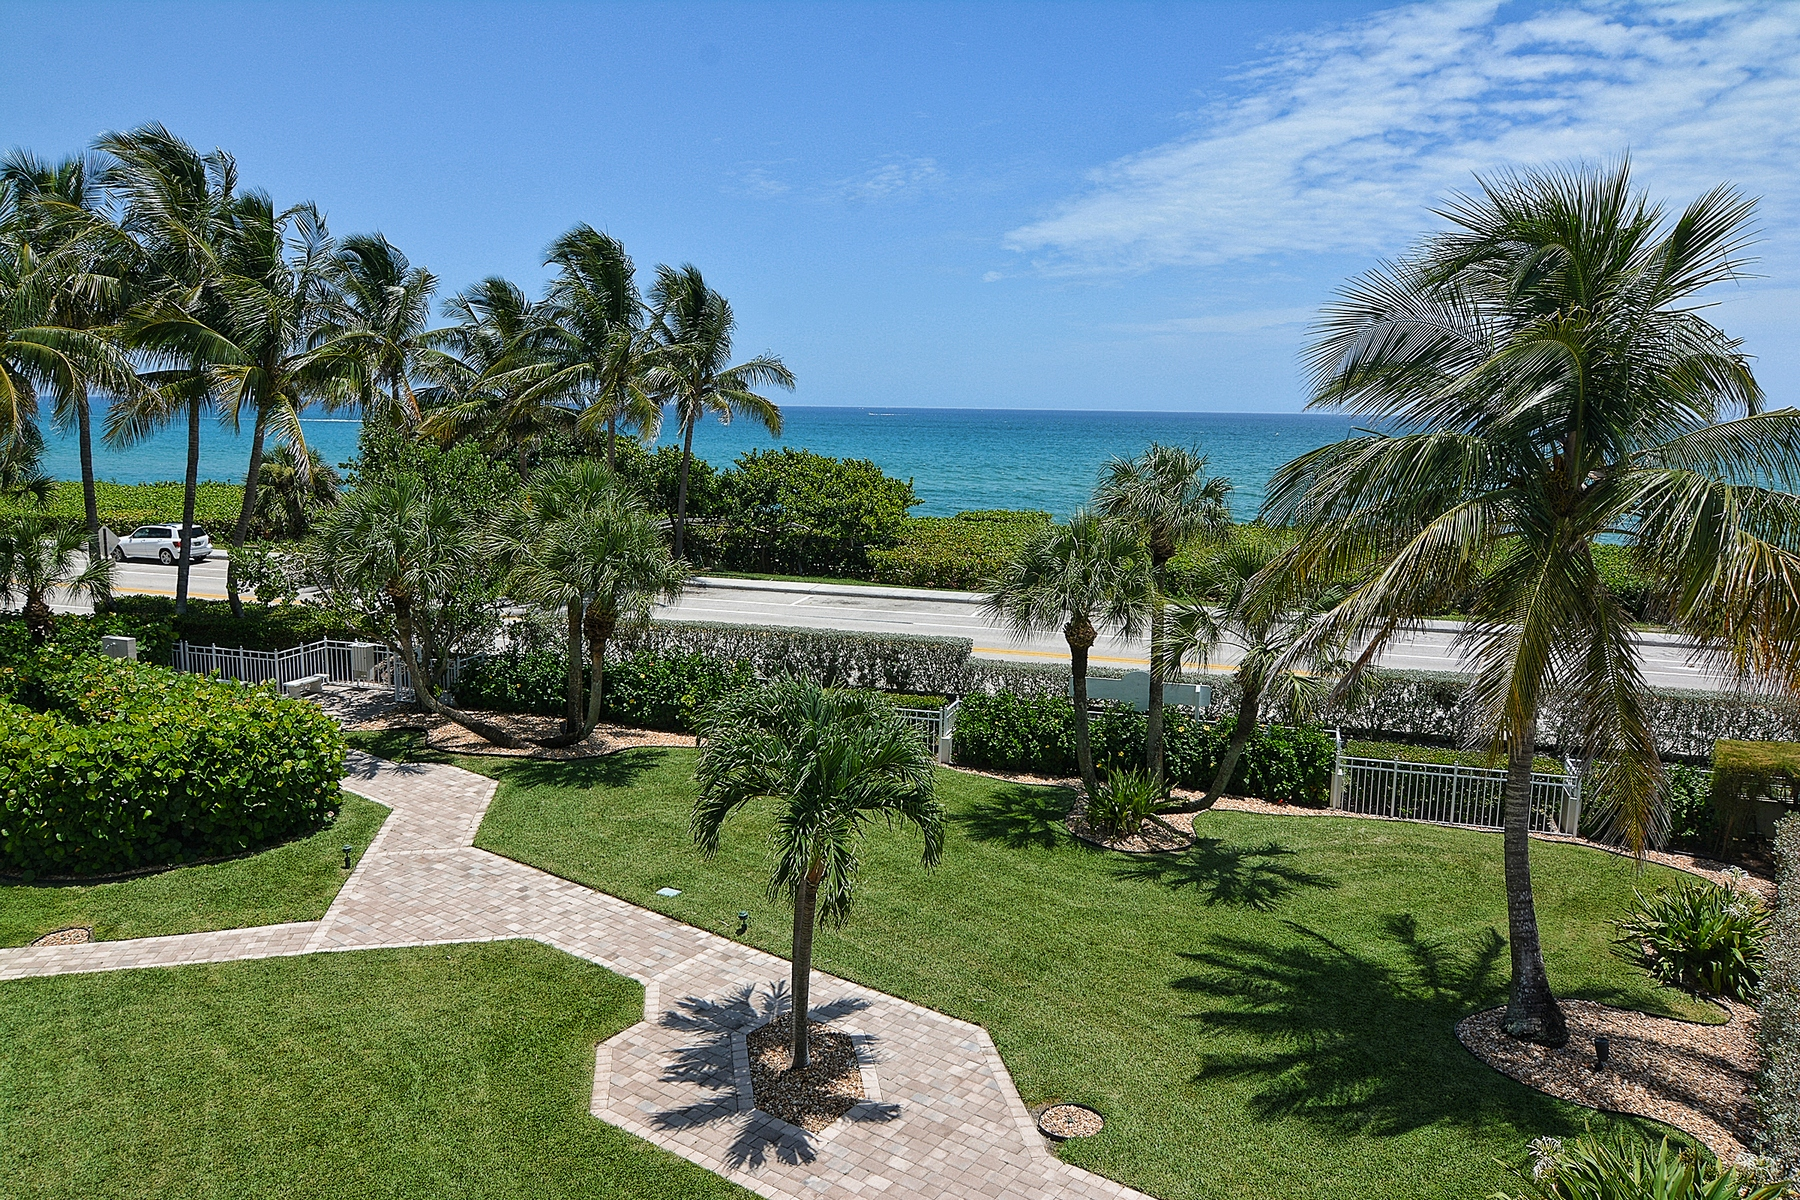 Condominium for Sale at 176 Helios Dr., 406 Jupiter, Florida, 33477 United States